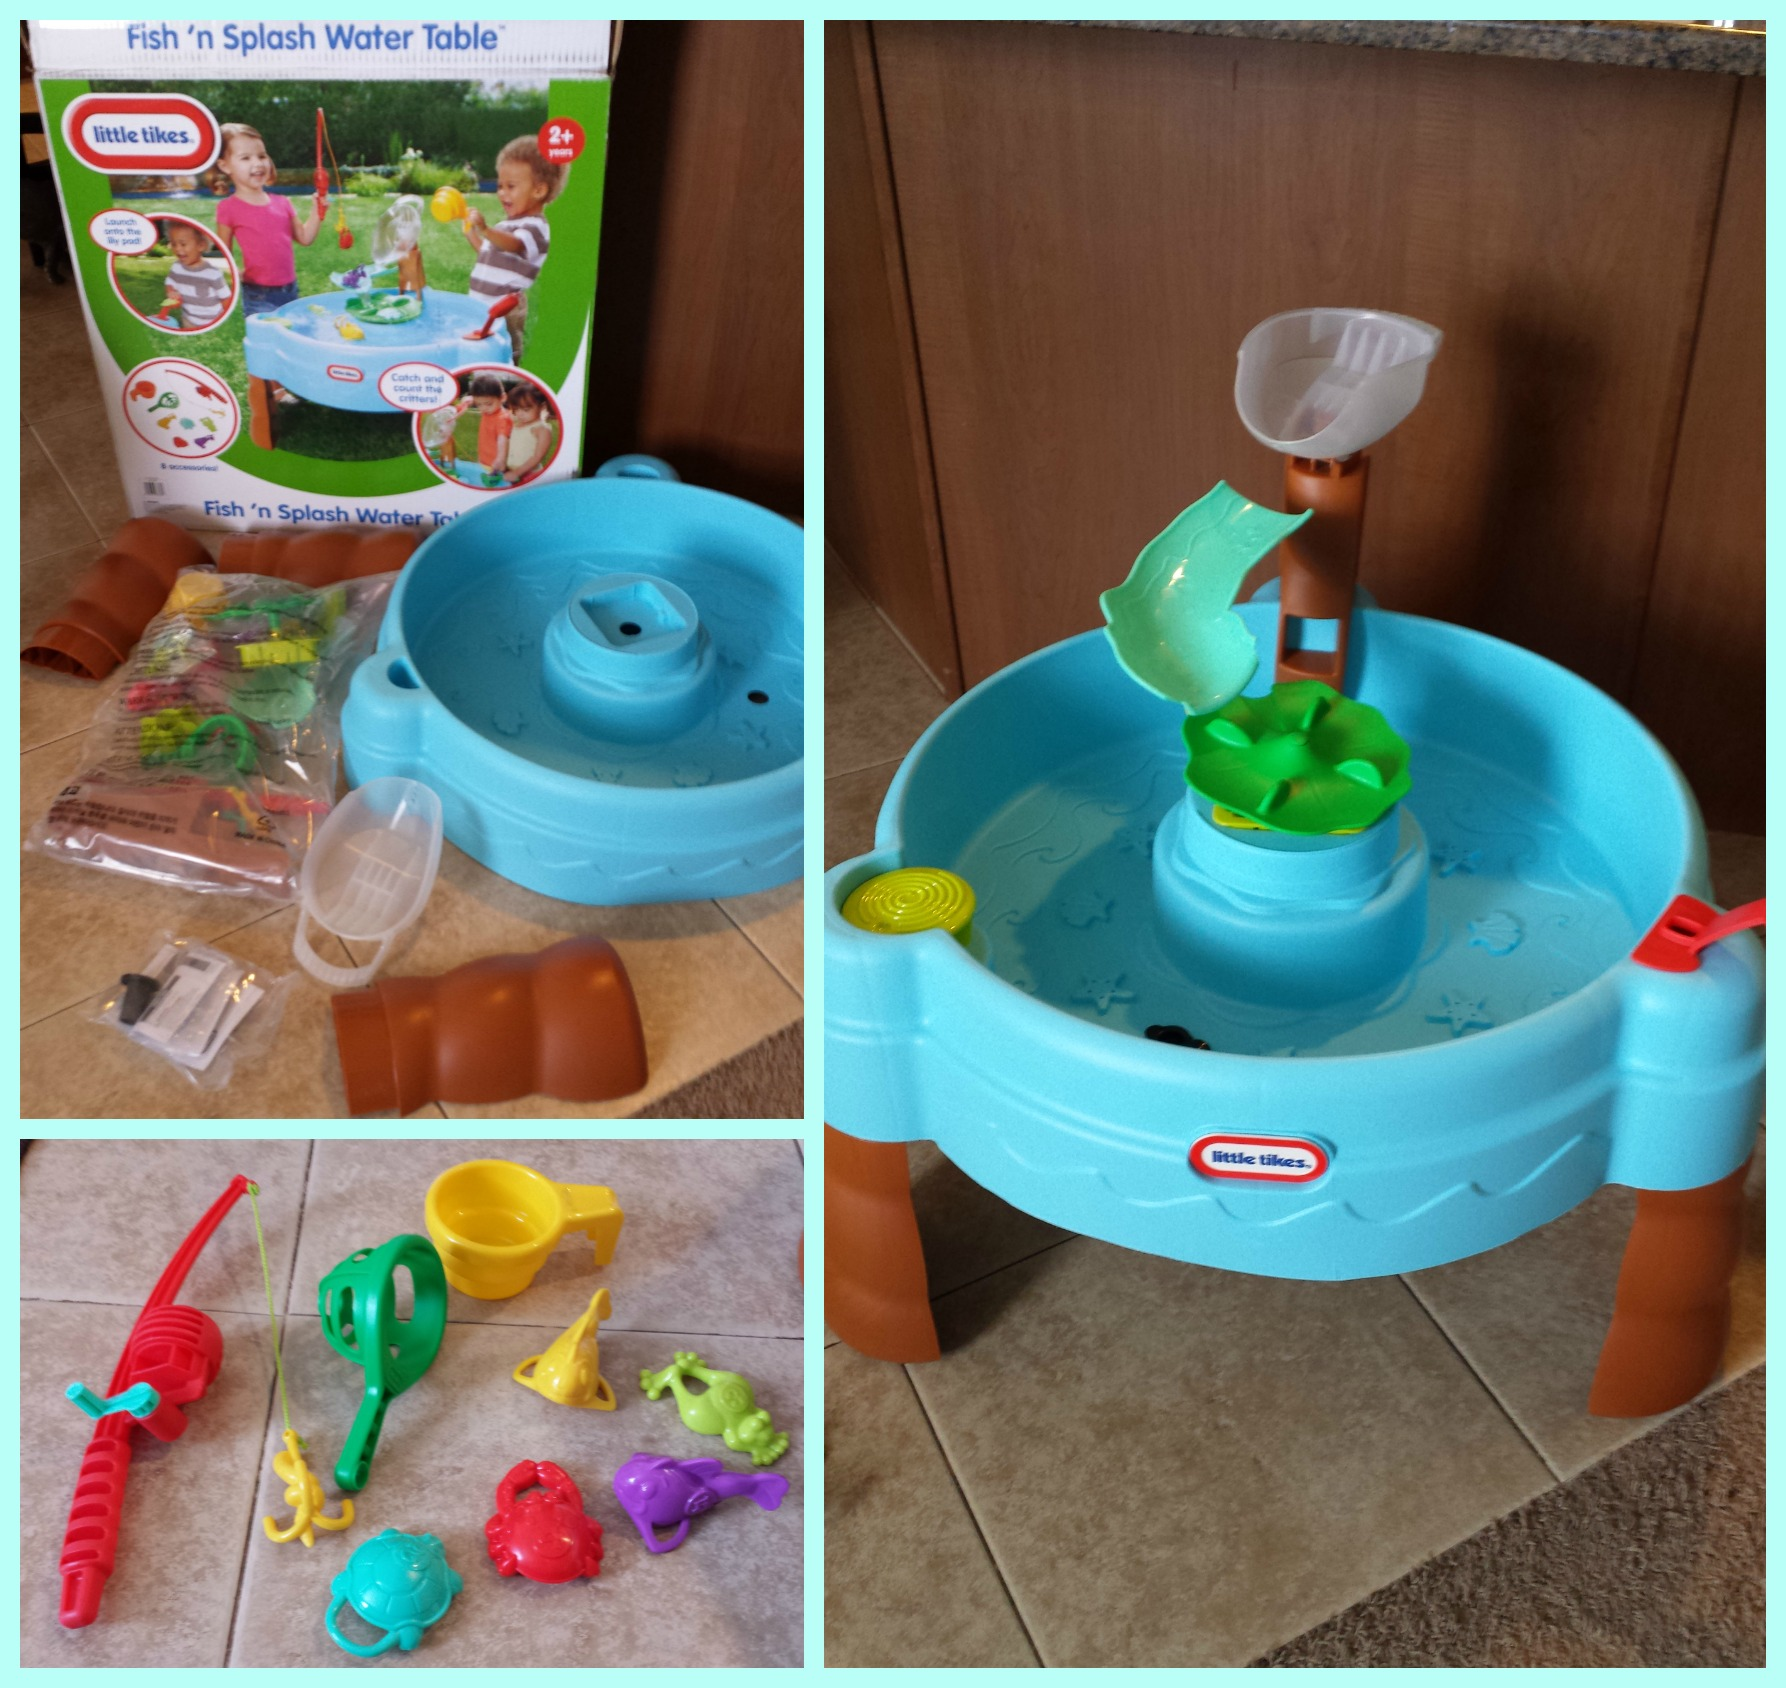 fish table sweepstakes little tikes fish n splash water table review and giveaway 8760